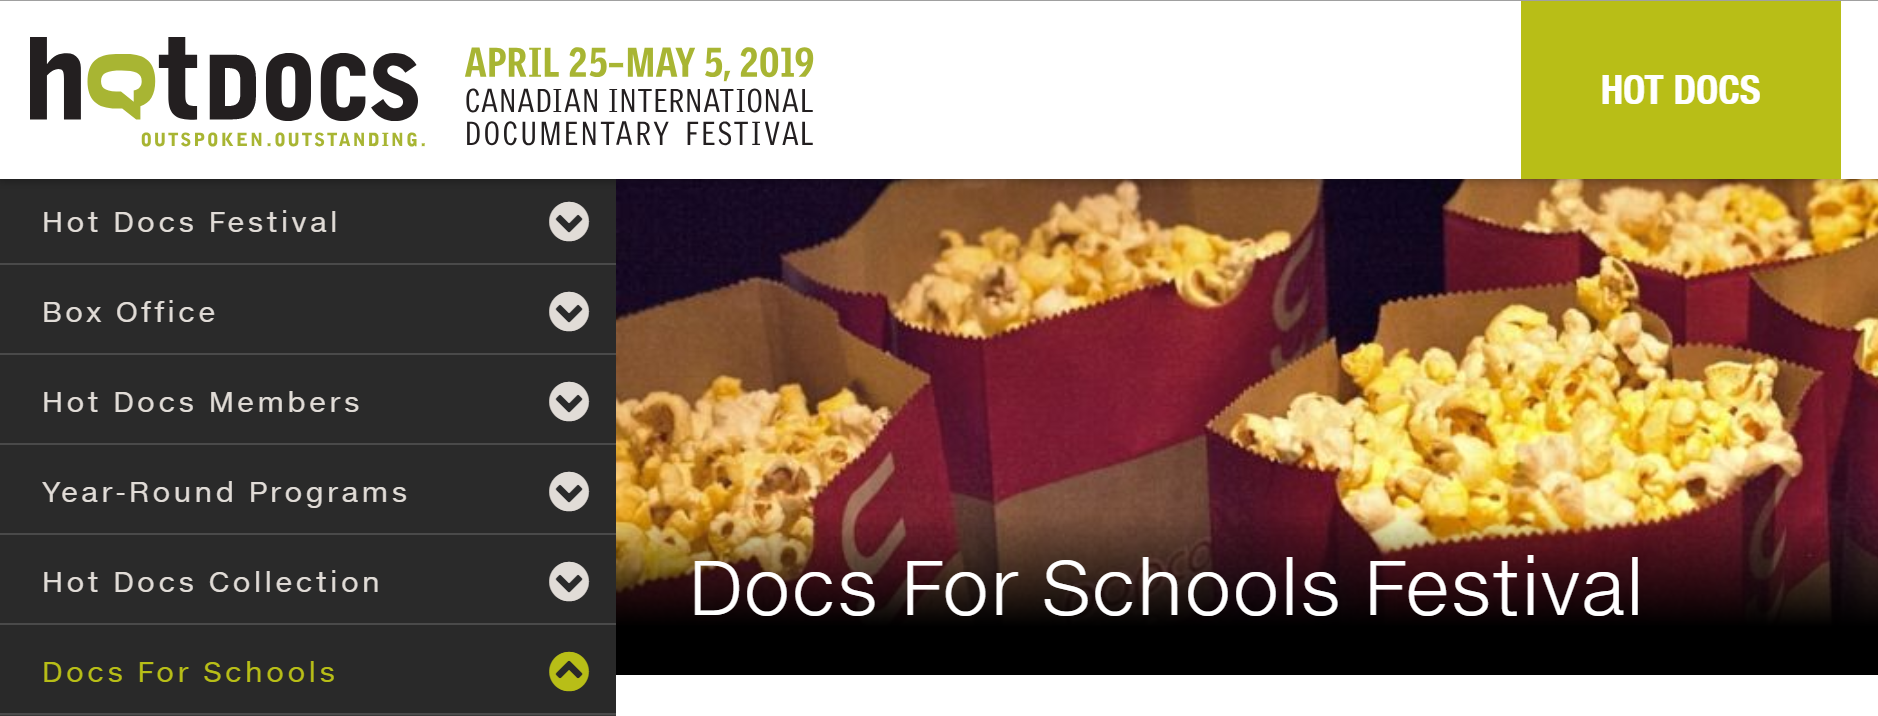 Hot Docs Film Festival snapshot